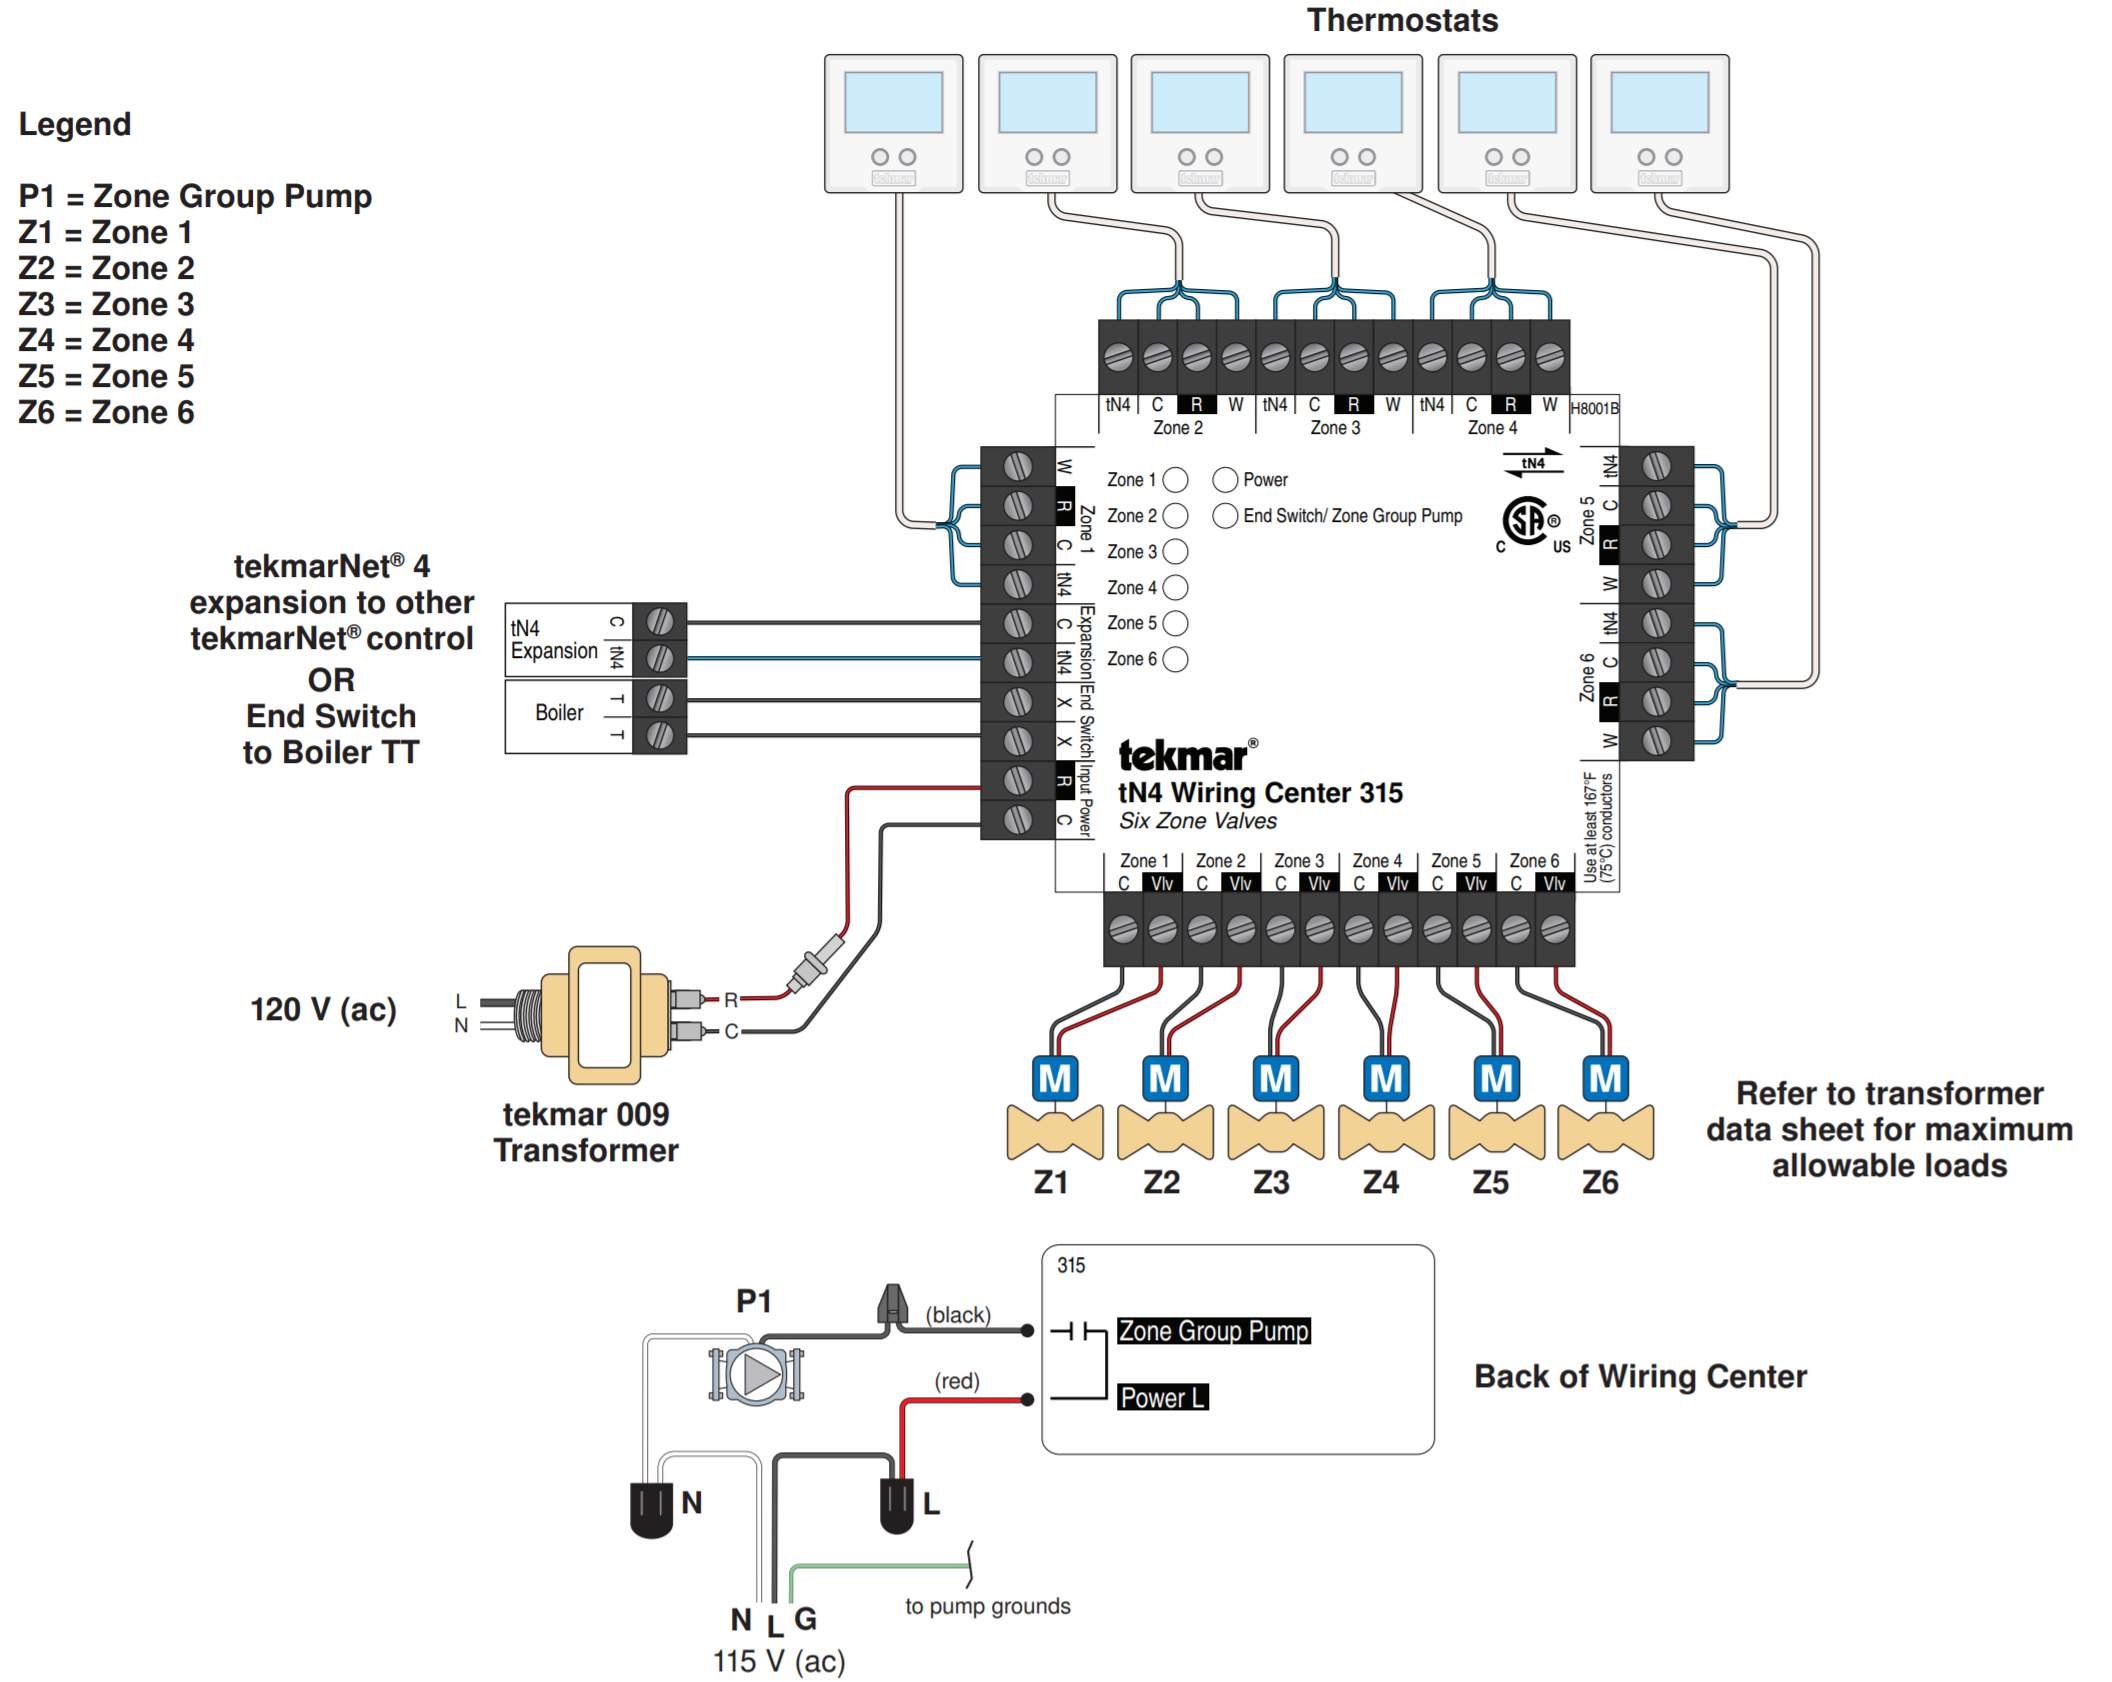 TEKMAR 315 WIRING DIAGRAM